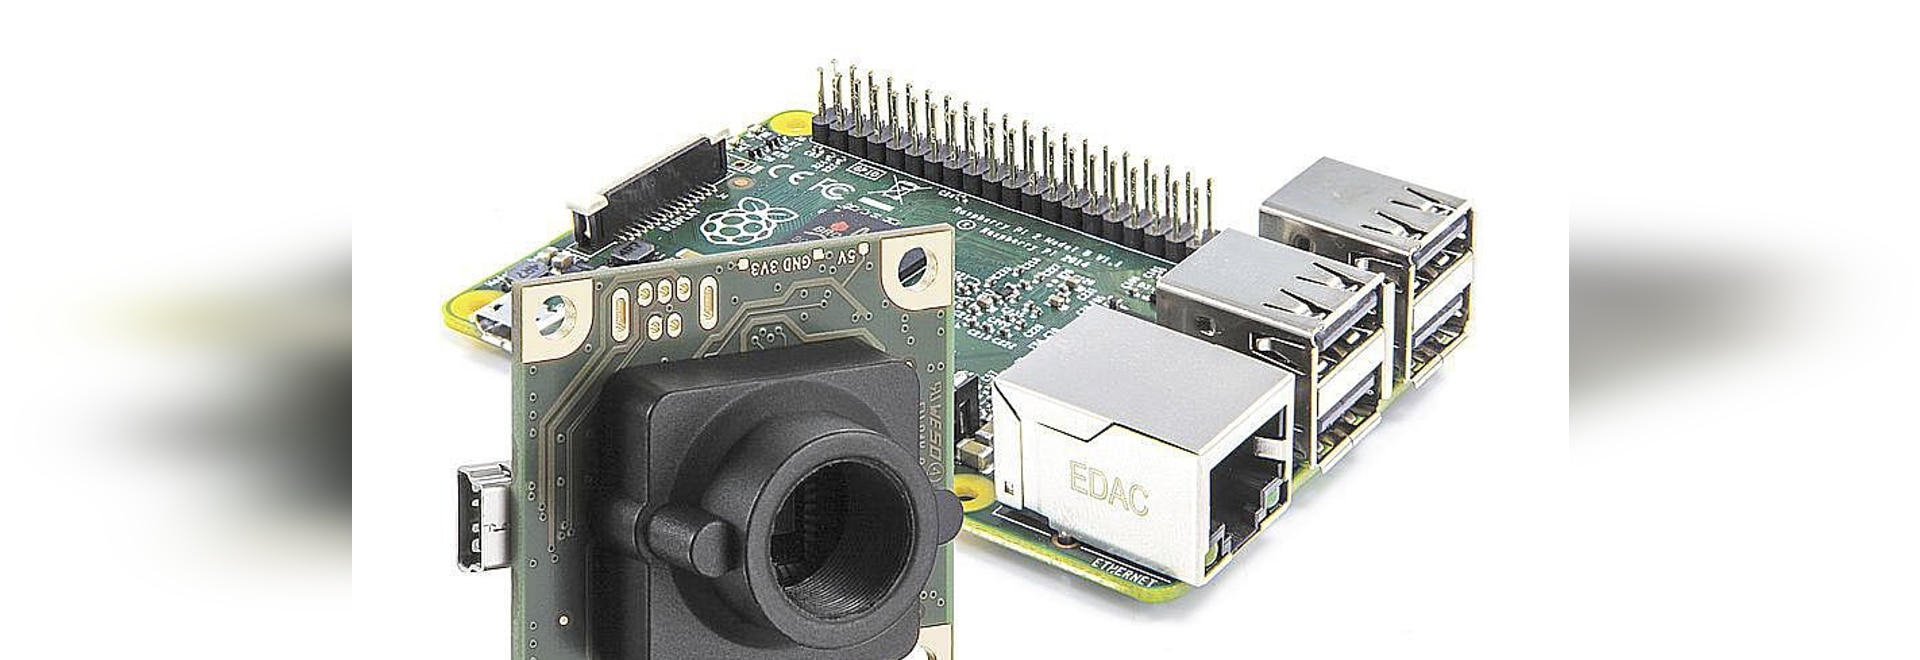 Budget-priced embedded vision solutions with single-board computer ...